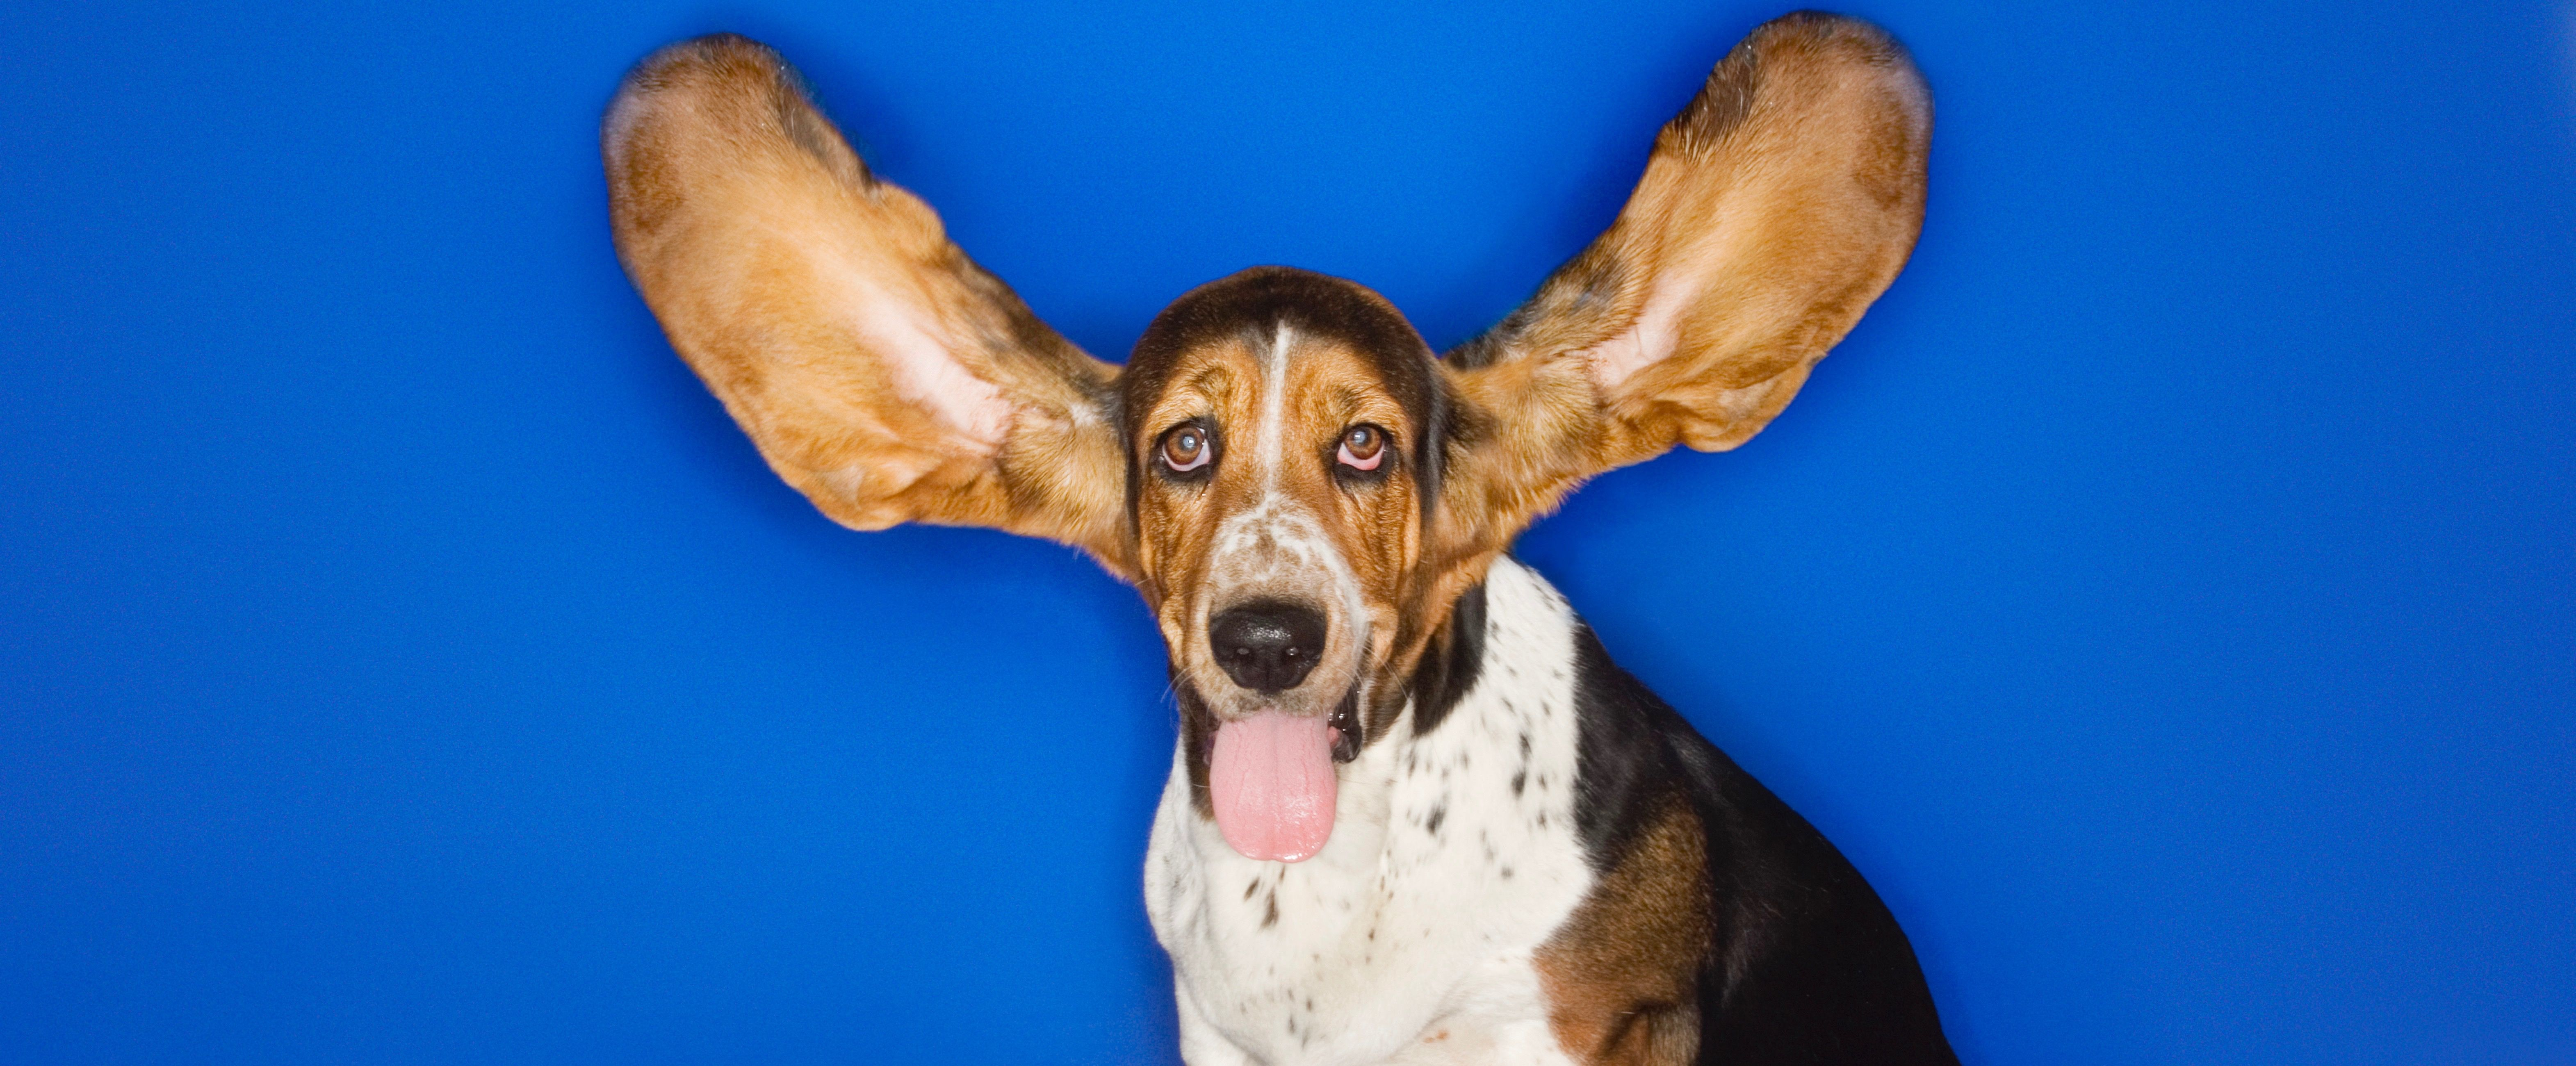 6 Phrases That Demonstrate Active Listening